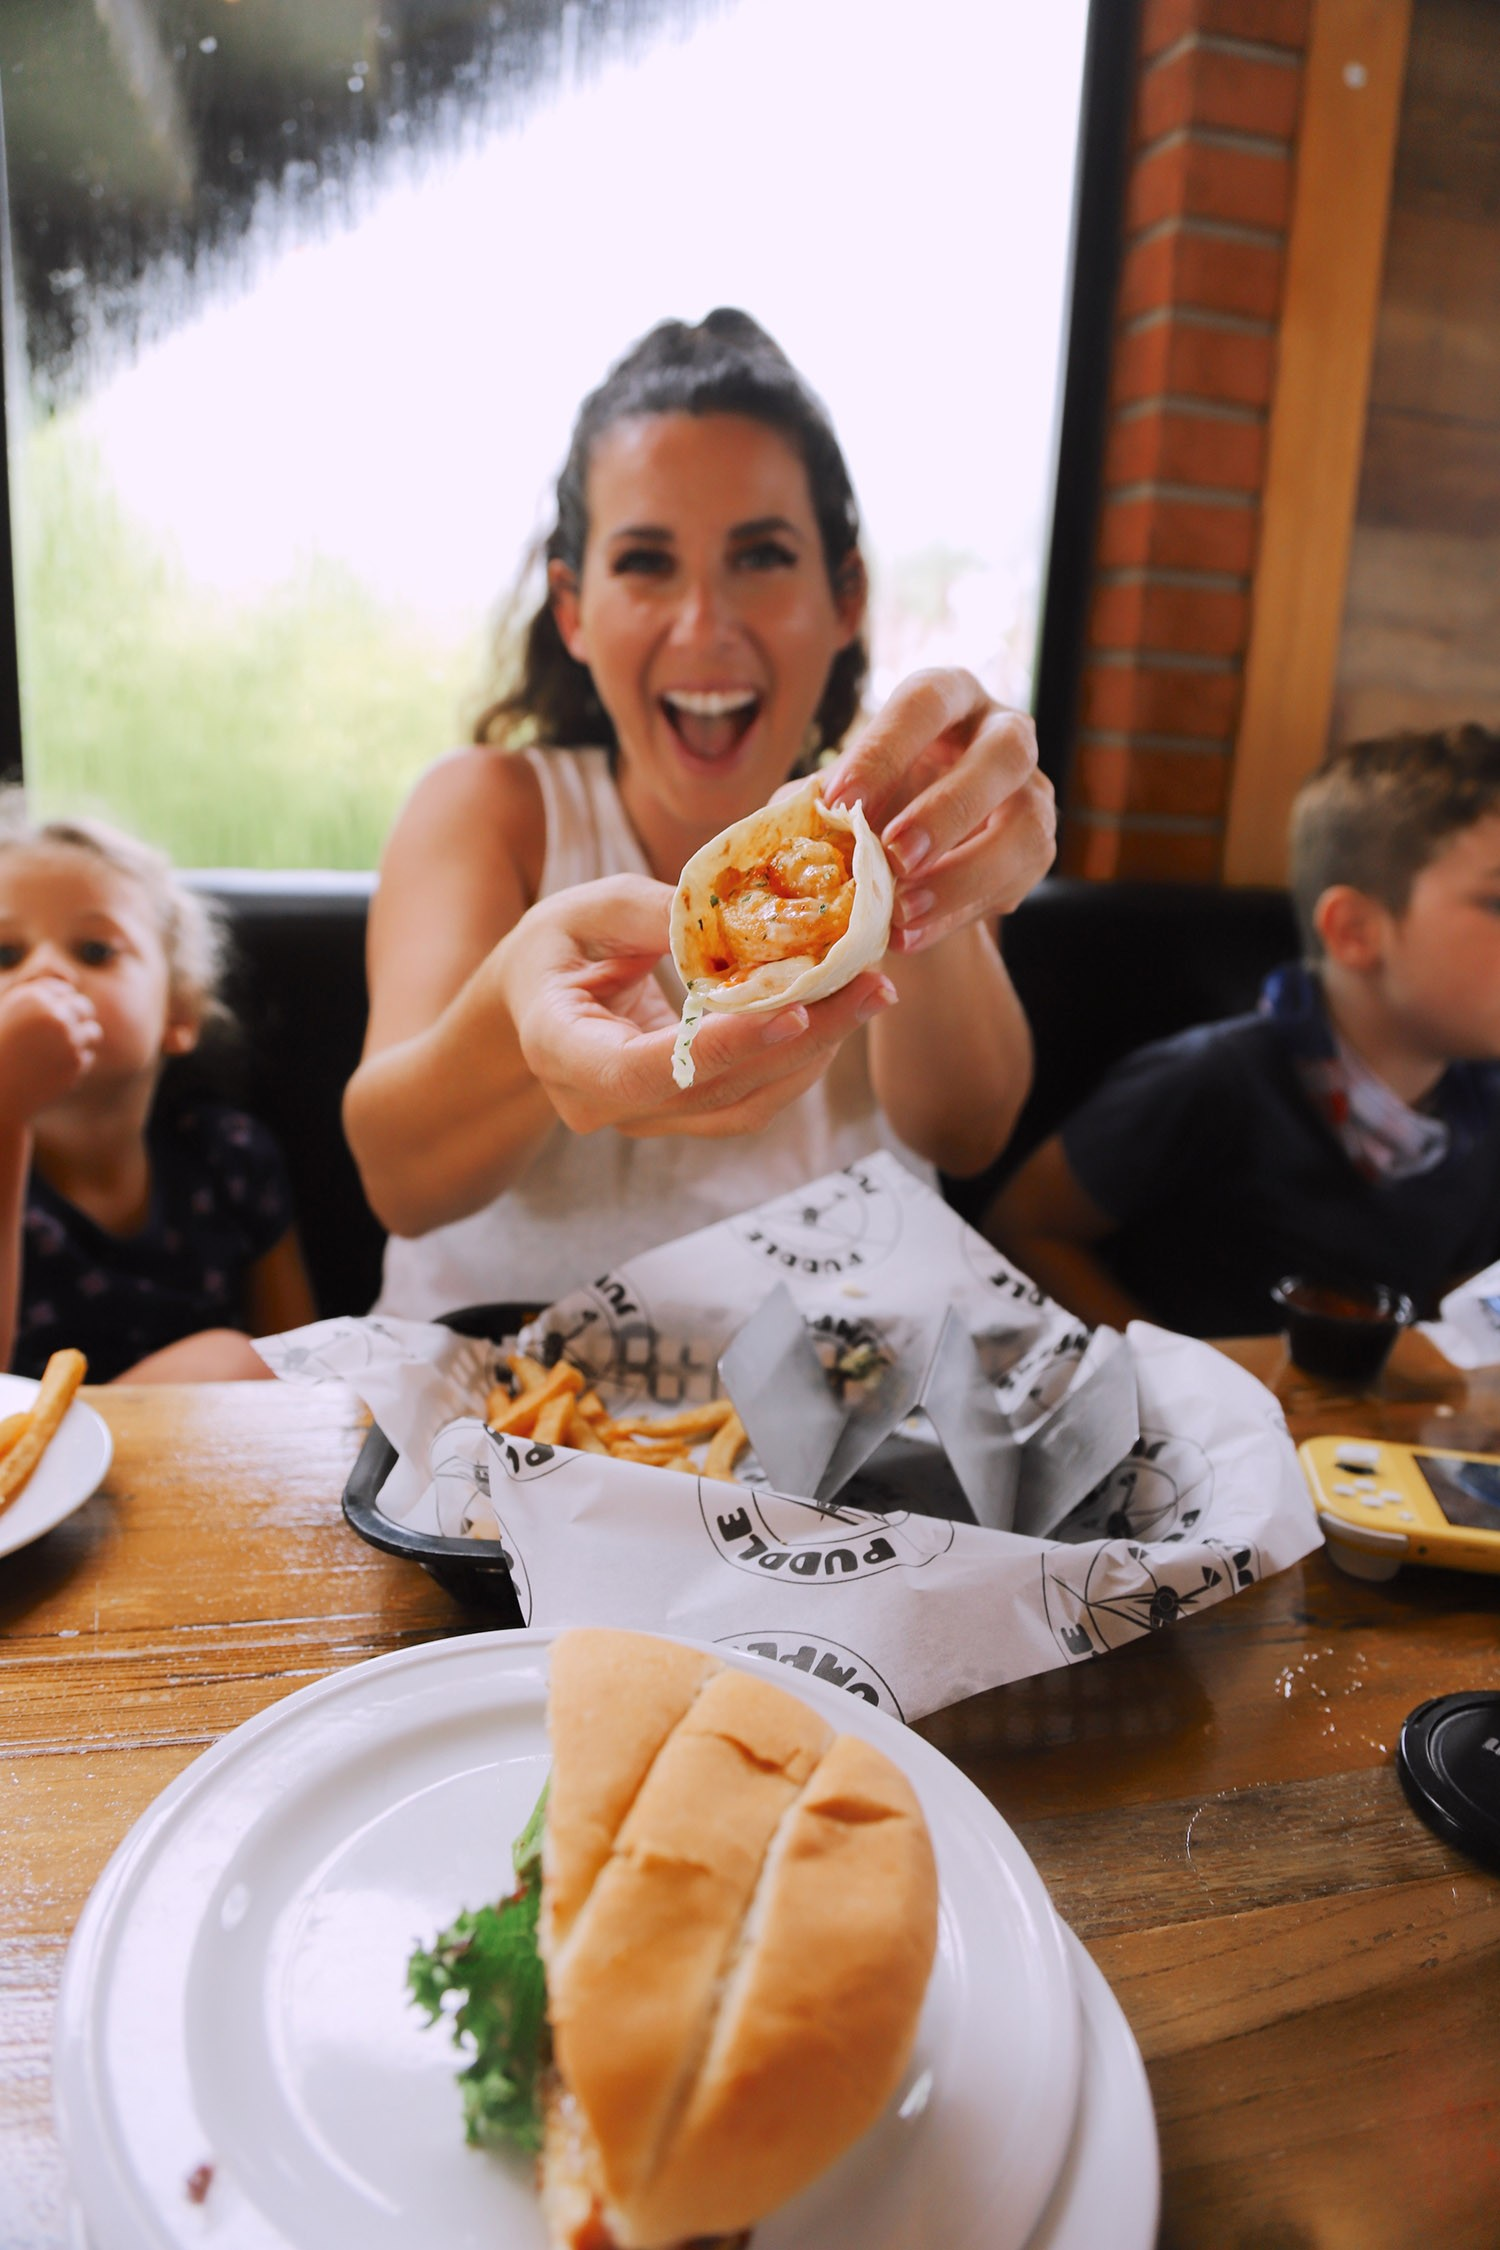 Spectacular Lake County, Florida Staycation Ideas for the Family! Spicy Shrimp Tacos at Puddle Jumpers   Lake County by popular Florida blog, Fresh Mommy Blog: image of a family eating food at Puddle Jumpers.